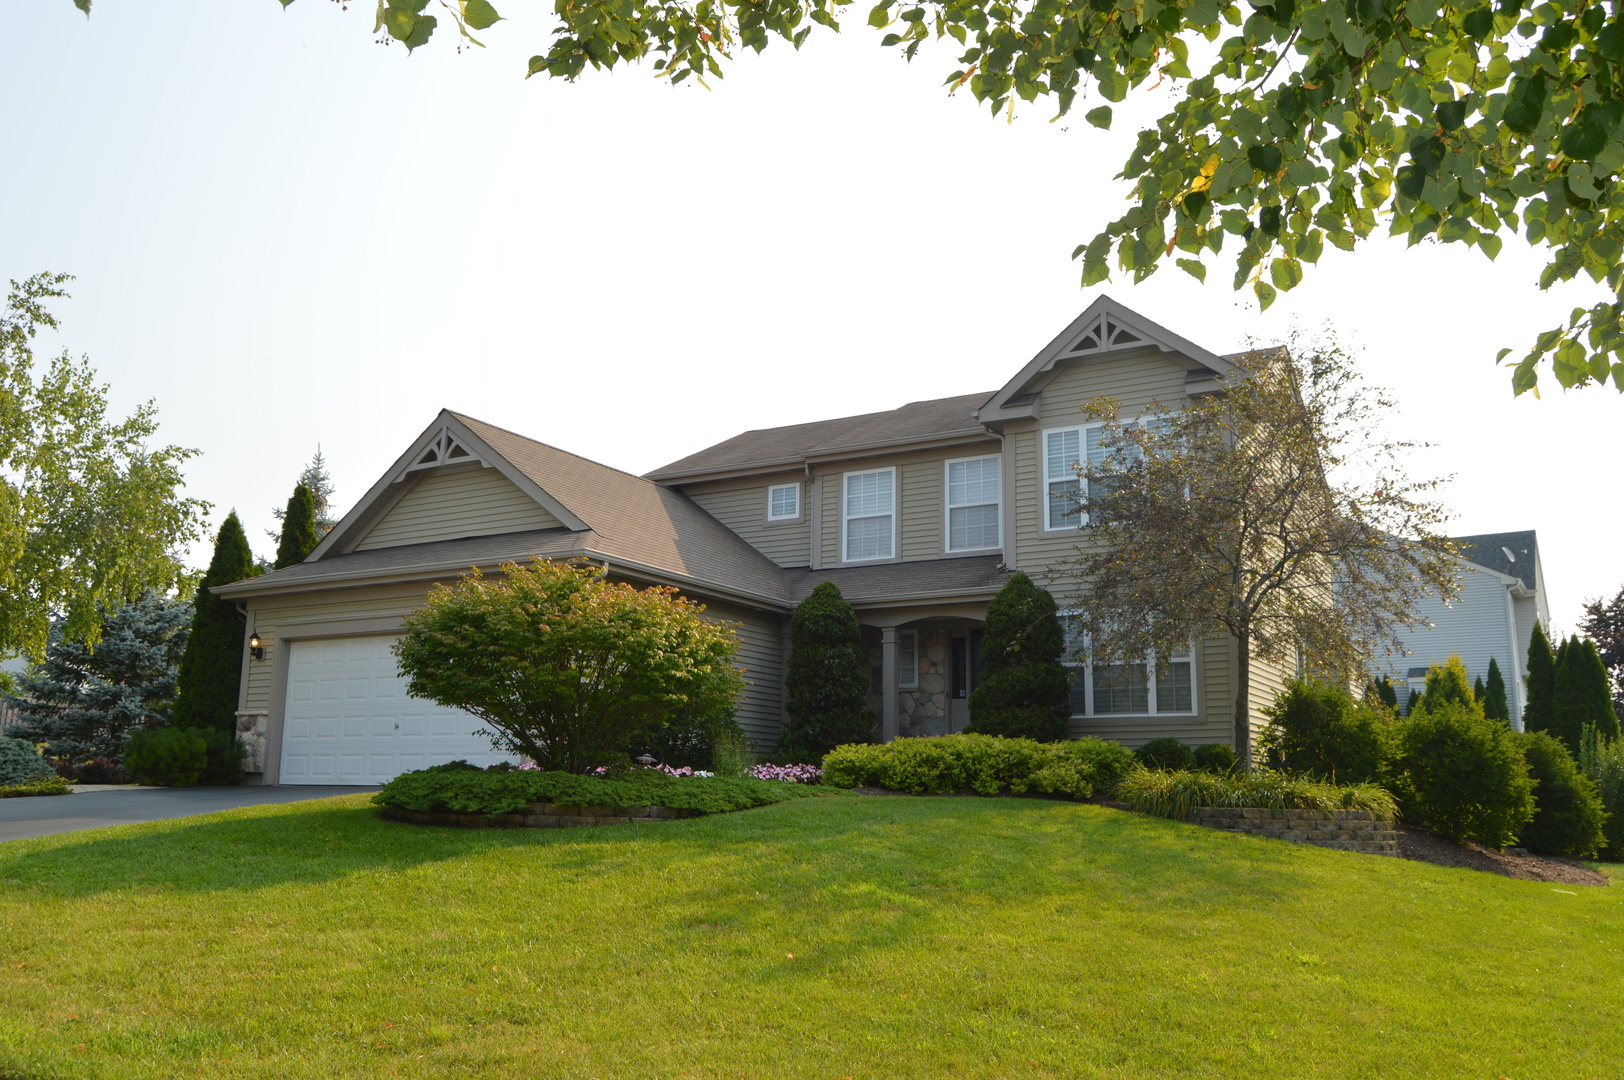 191 Winding Canyon Way, Algonquin in Kane County, IL 60102 Home for Sale